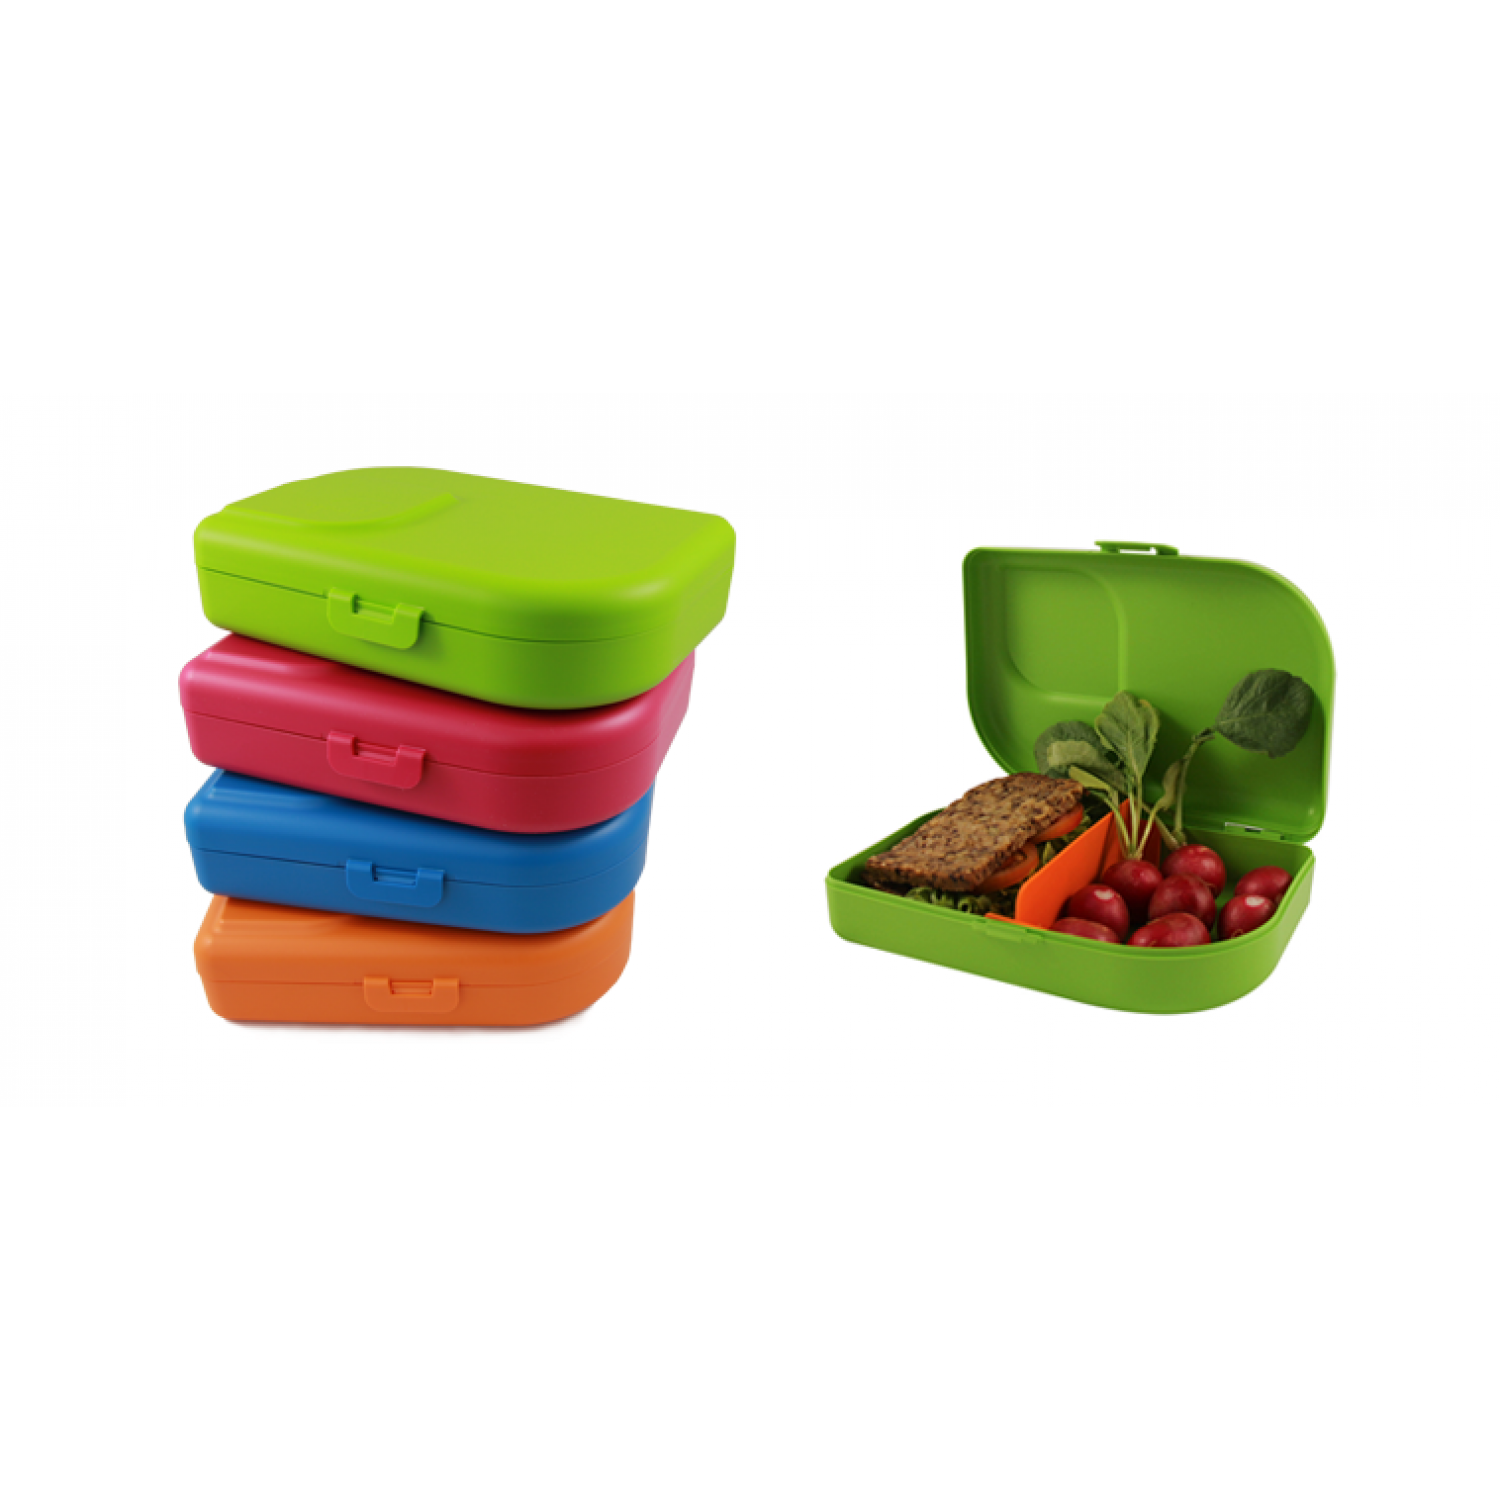 Nana Lunchbox mandarin - lime - blue - pink